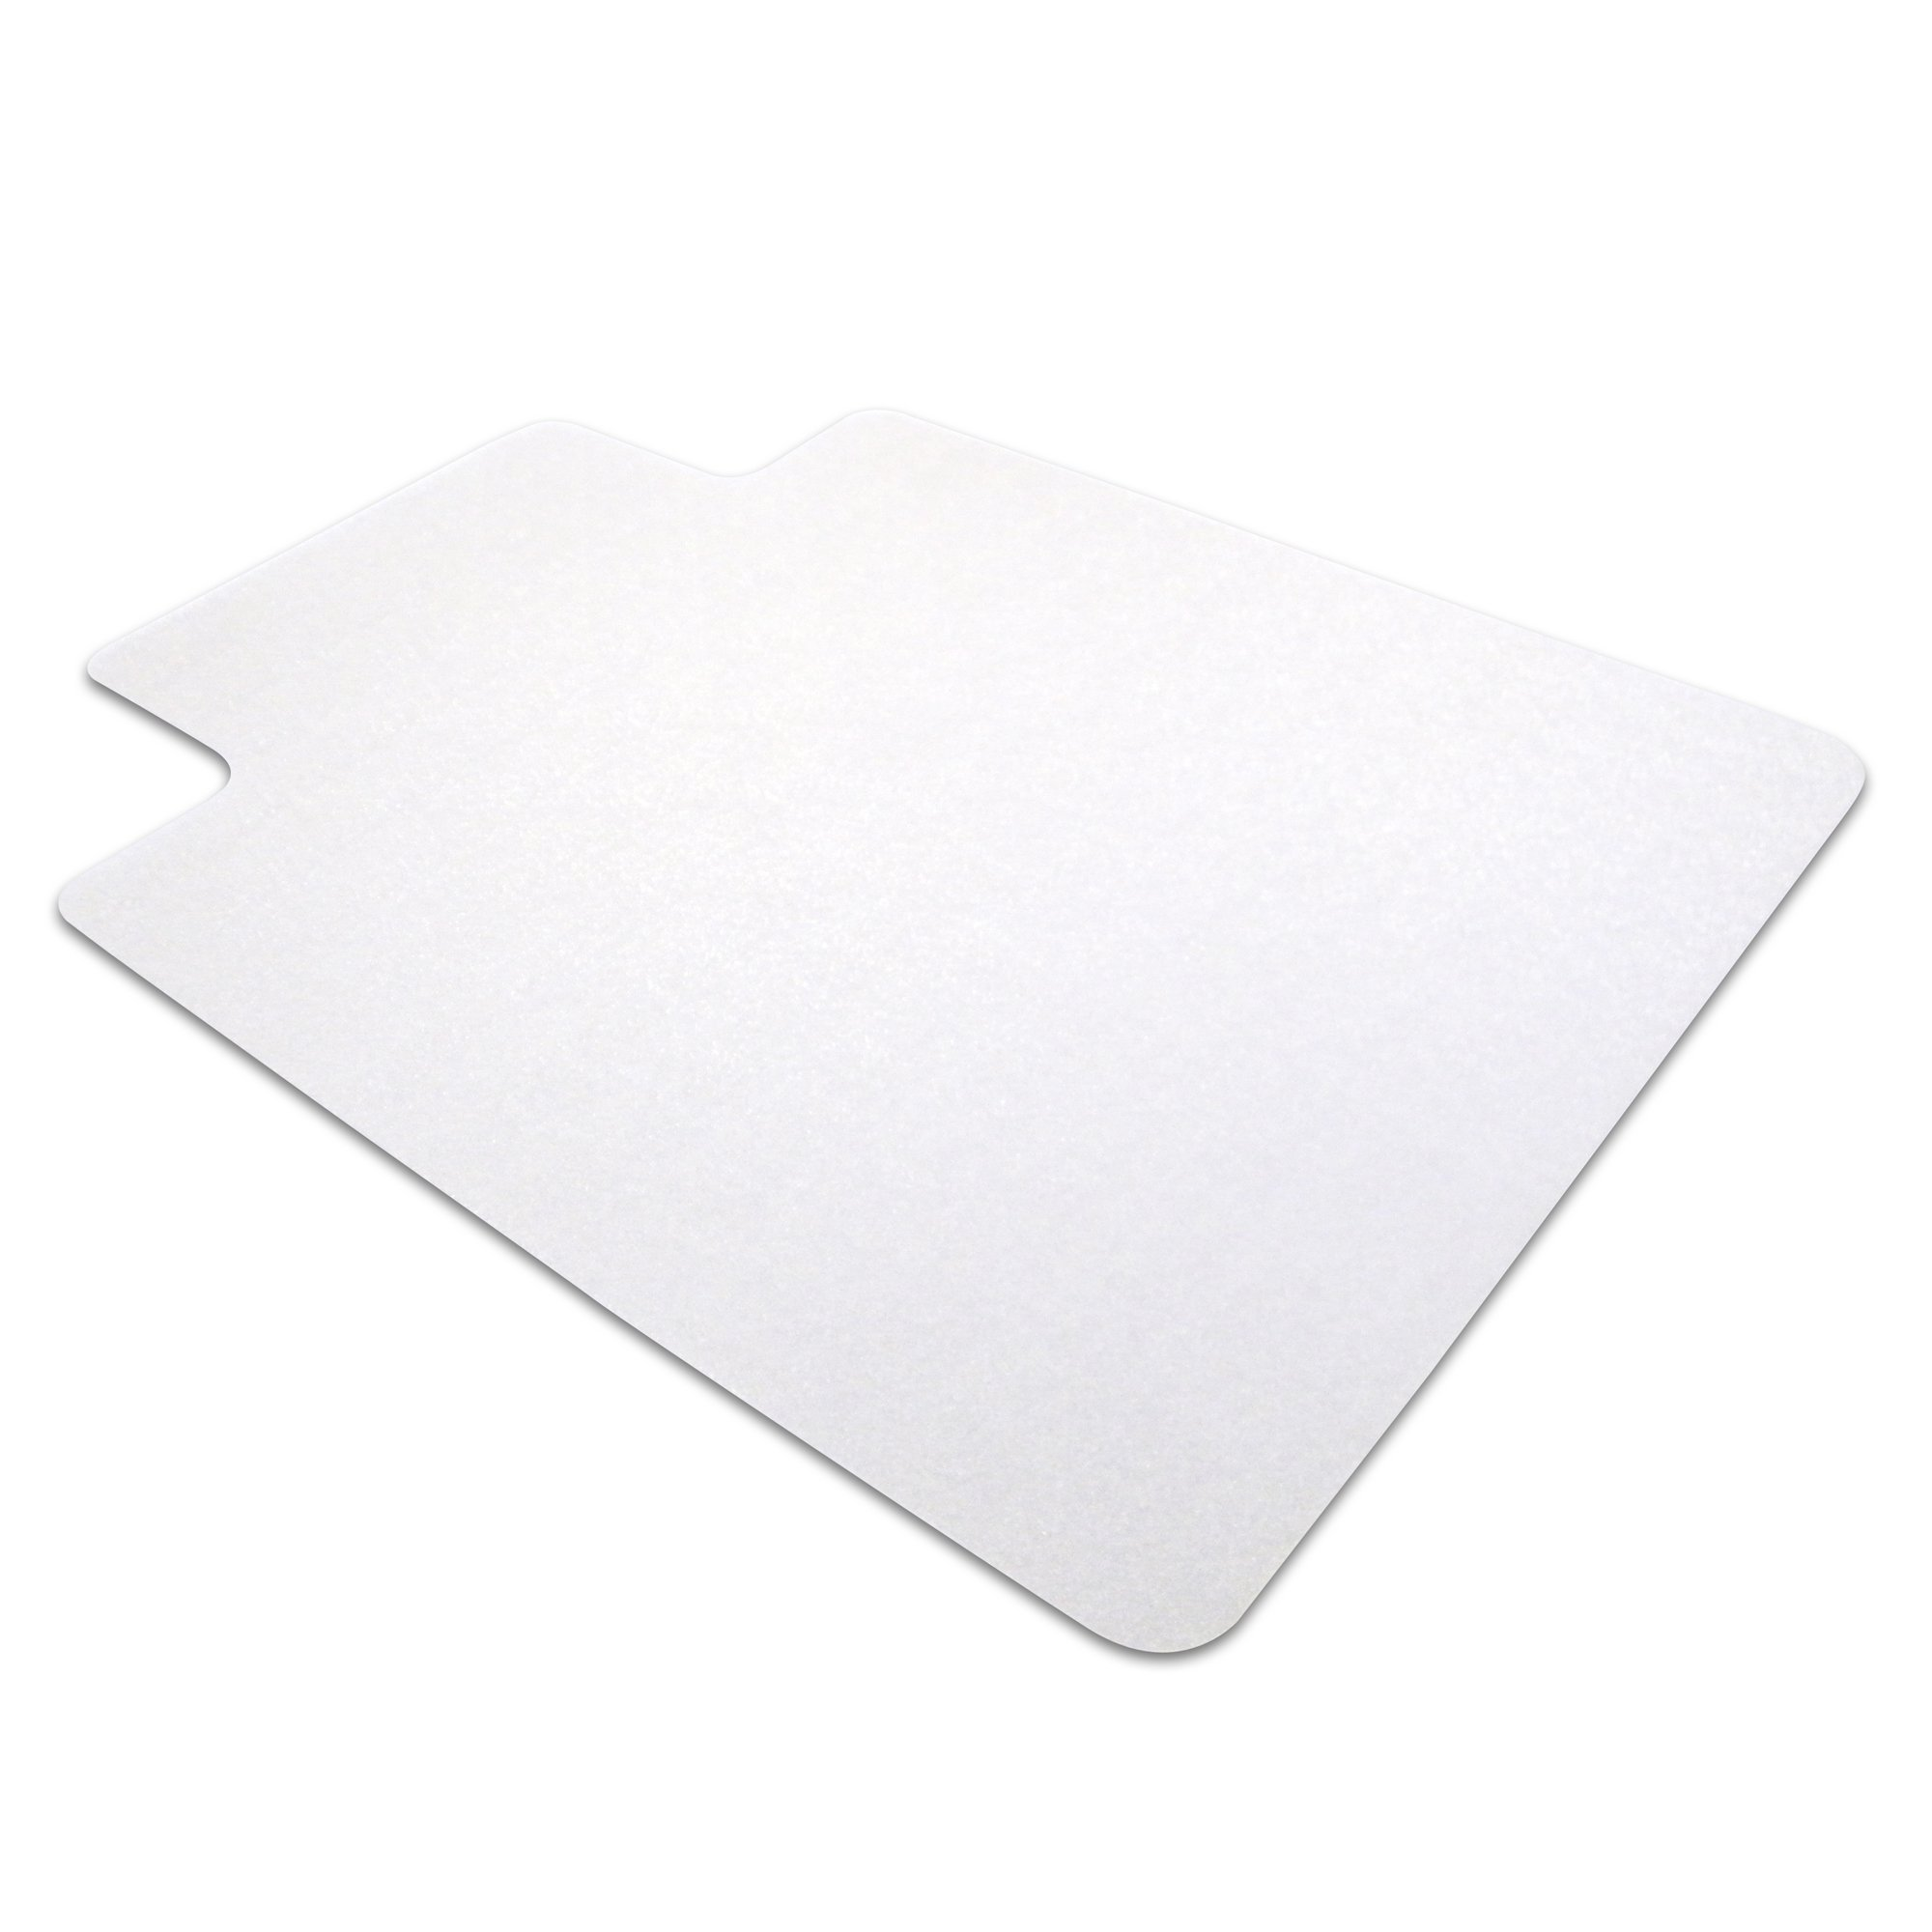 Floortex AdvantageMat PVC Chair Mat For Hard Floors Wood Tile Linoleum Or EBay